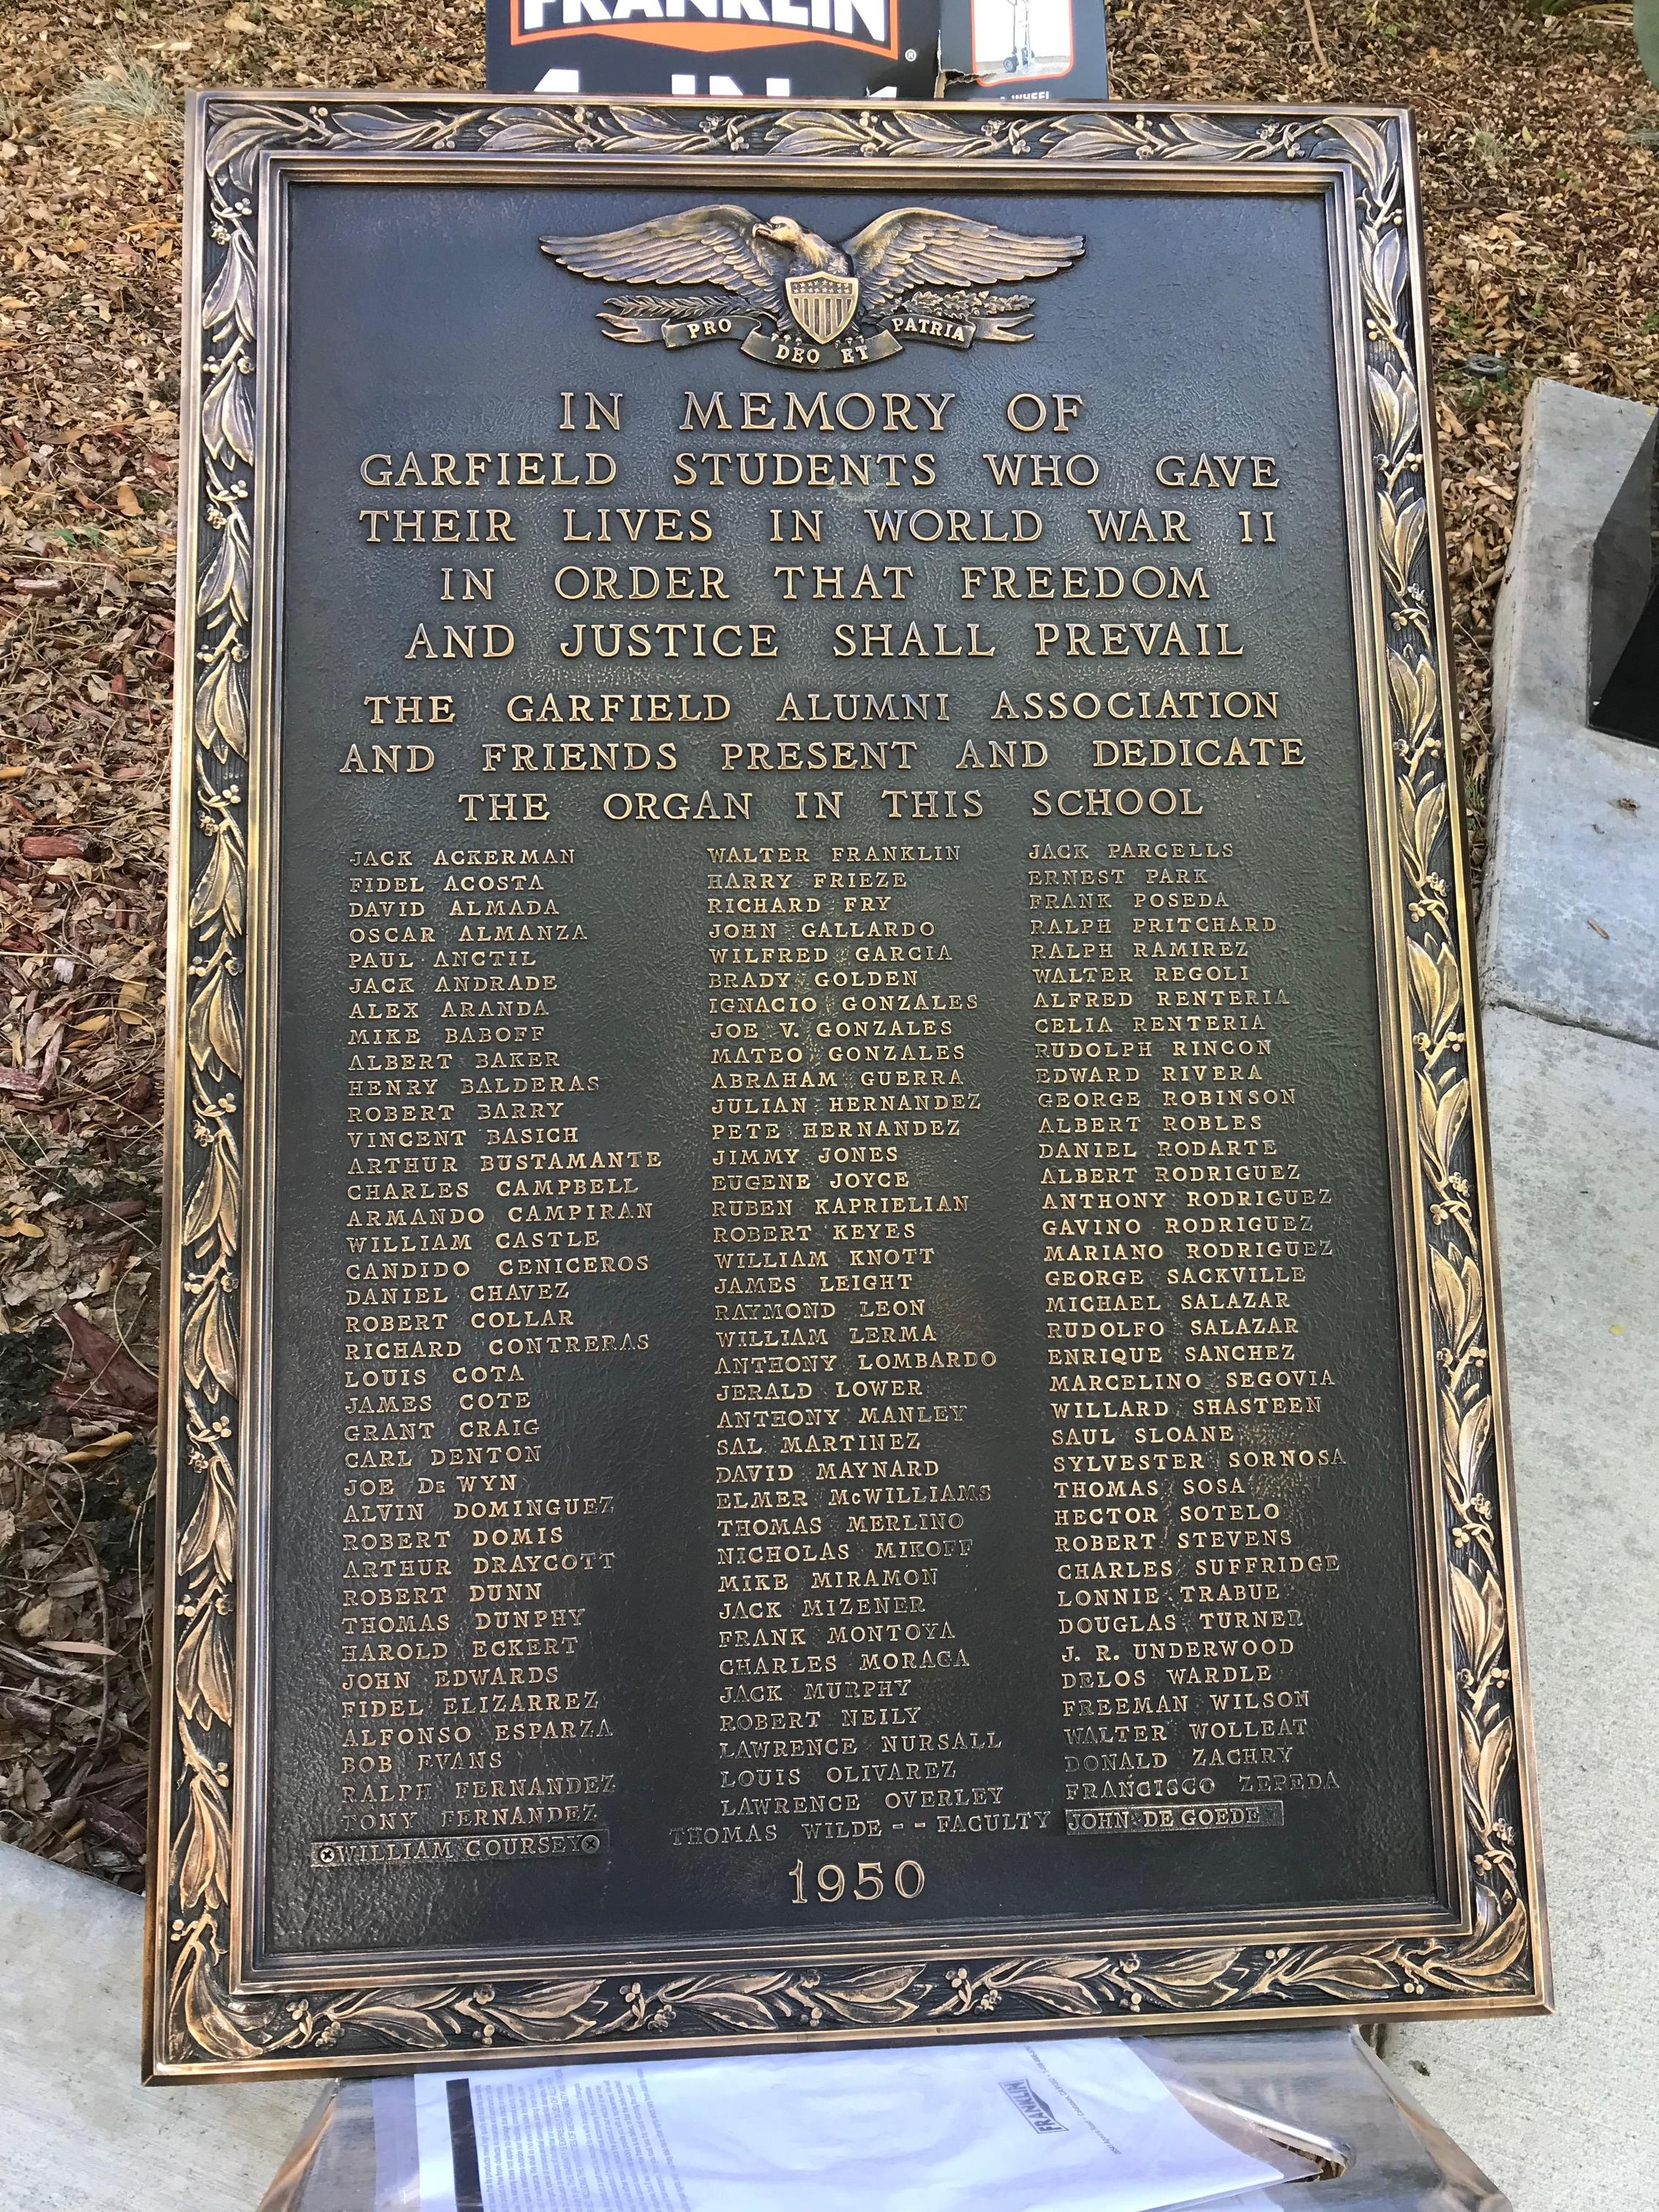 Memorial plaque for the Garfield students who gave their lives in WWII